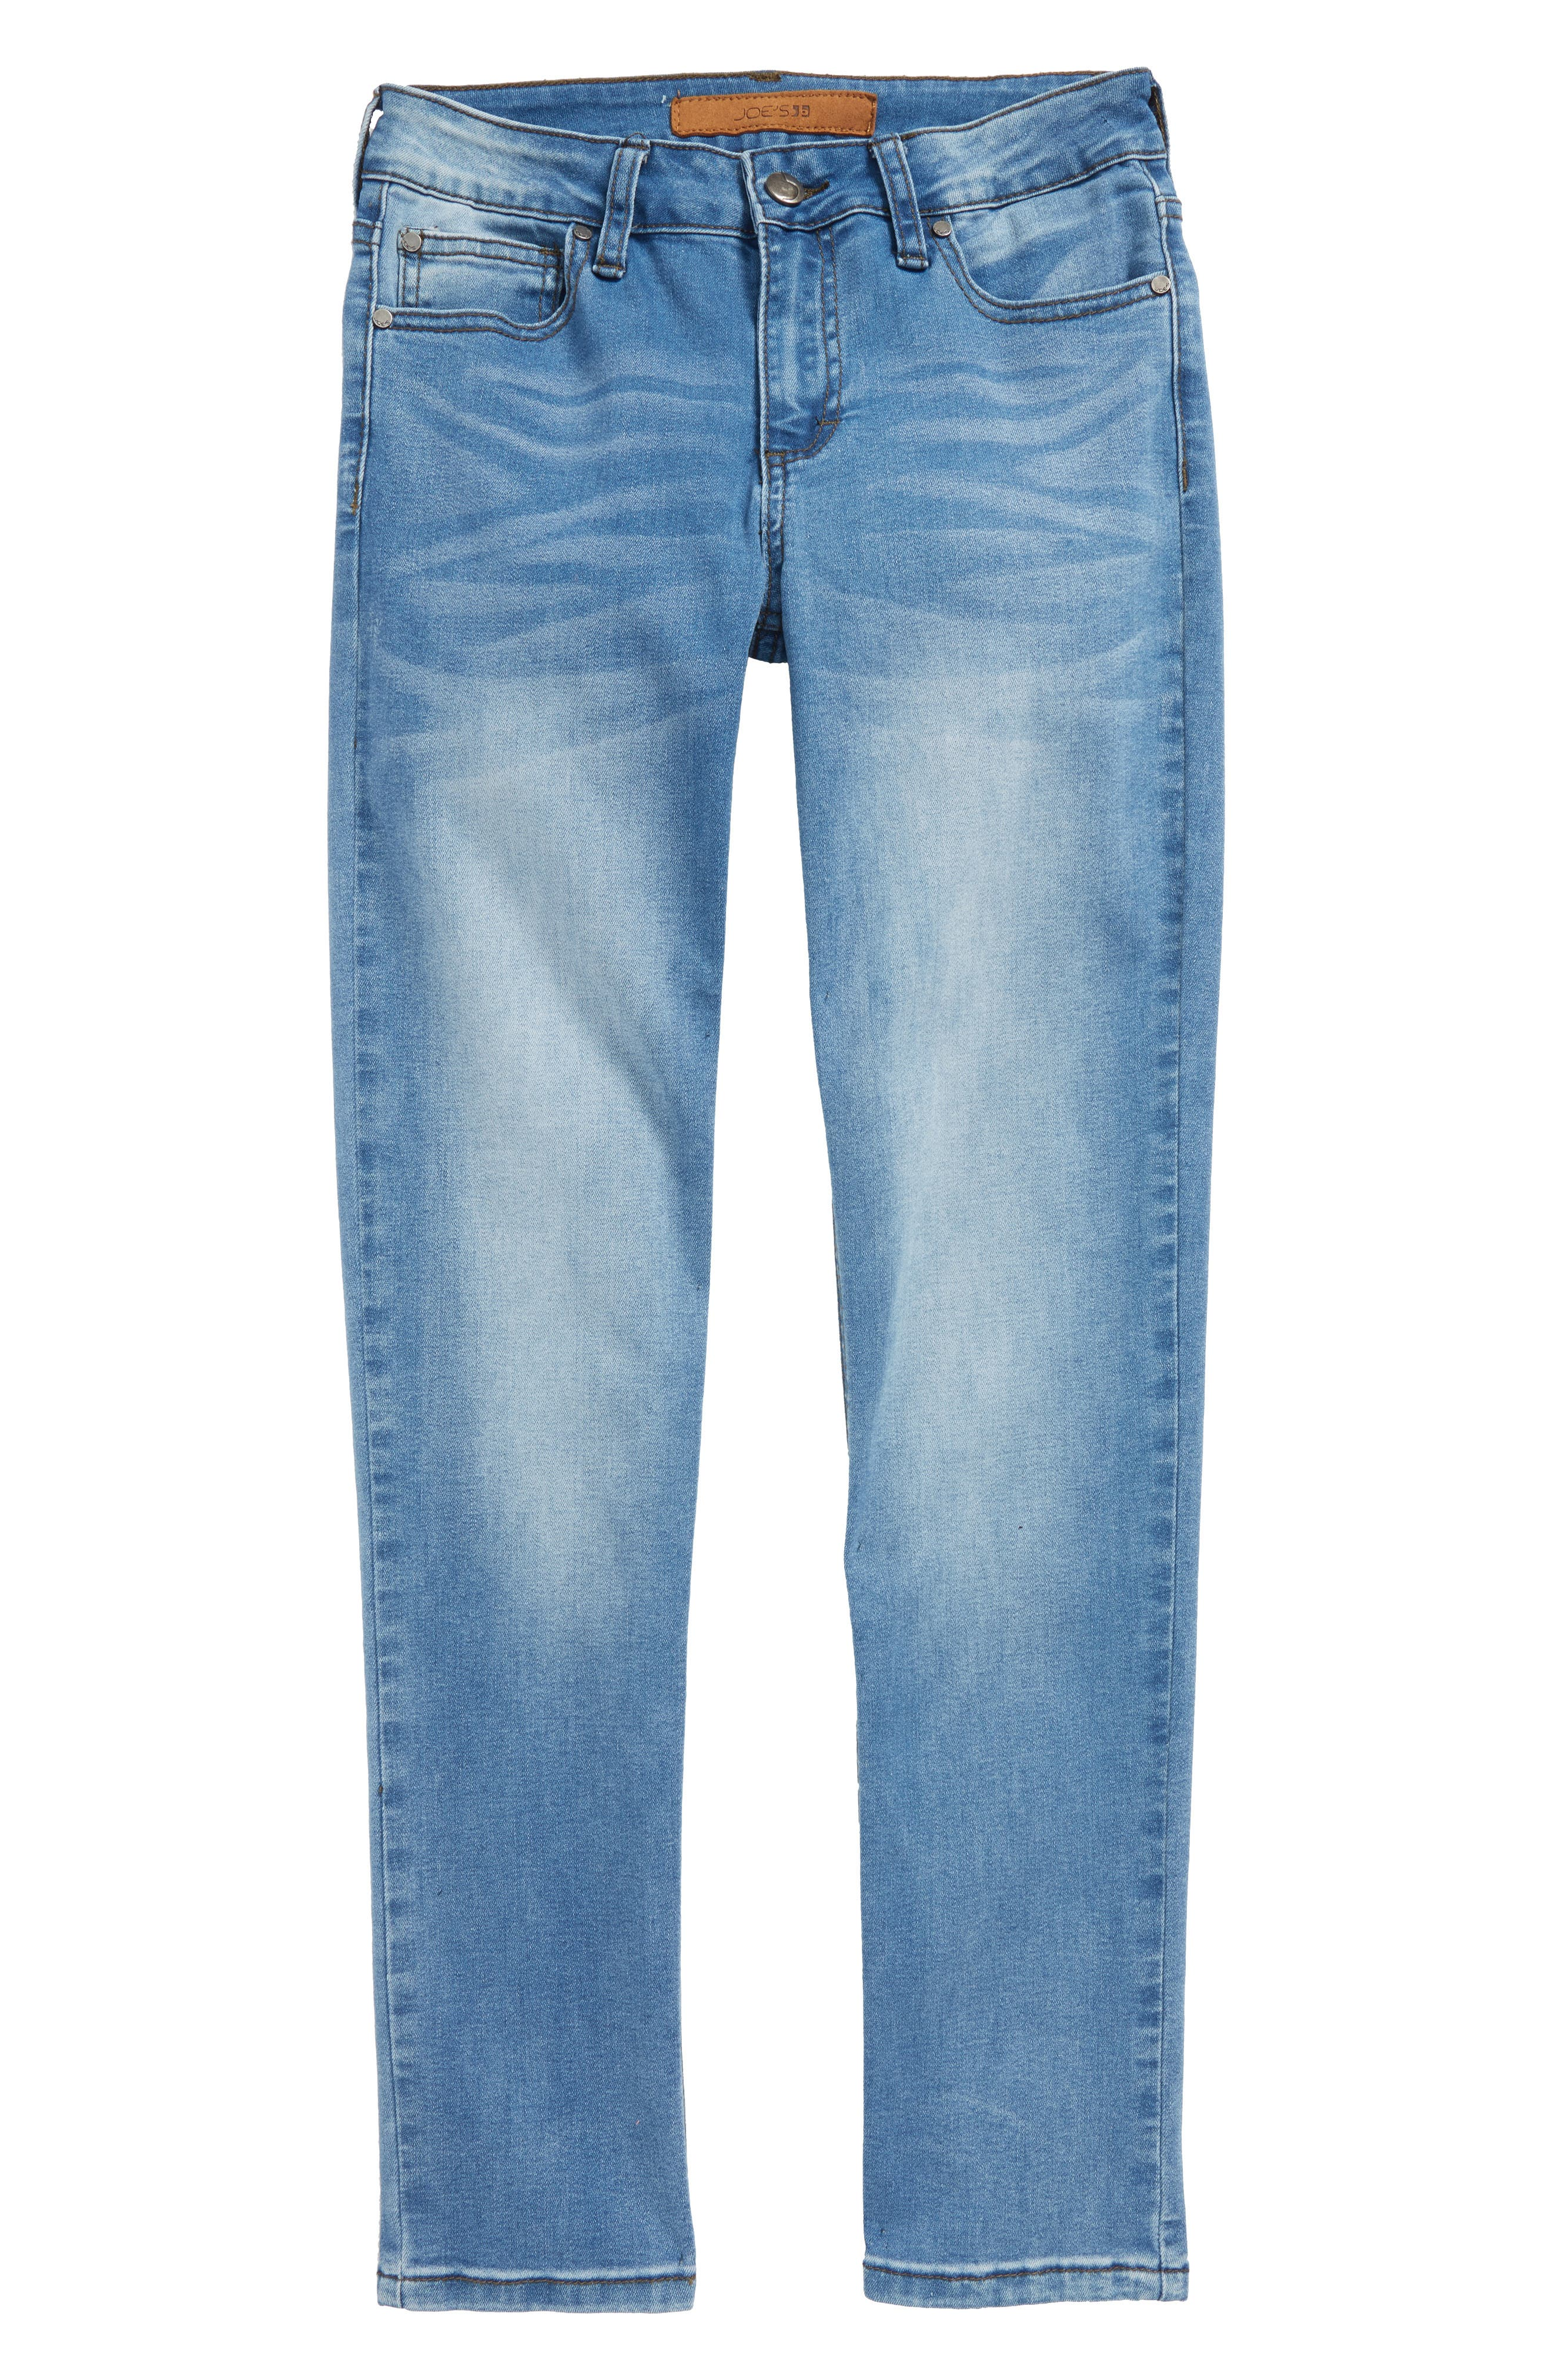 Rad Kinetic Stretch Skinny Fit Jeans,                             Main thumbnail 1, color,                             436